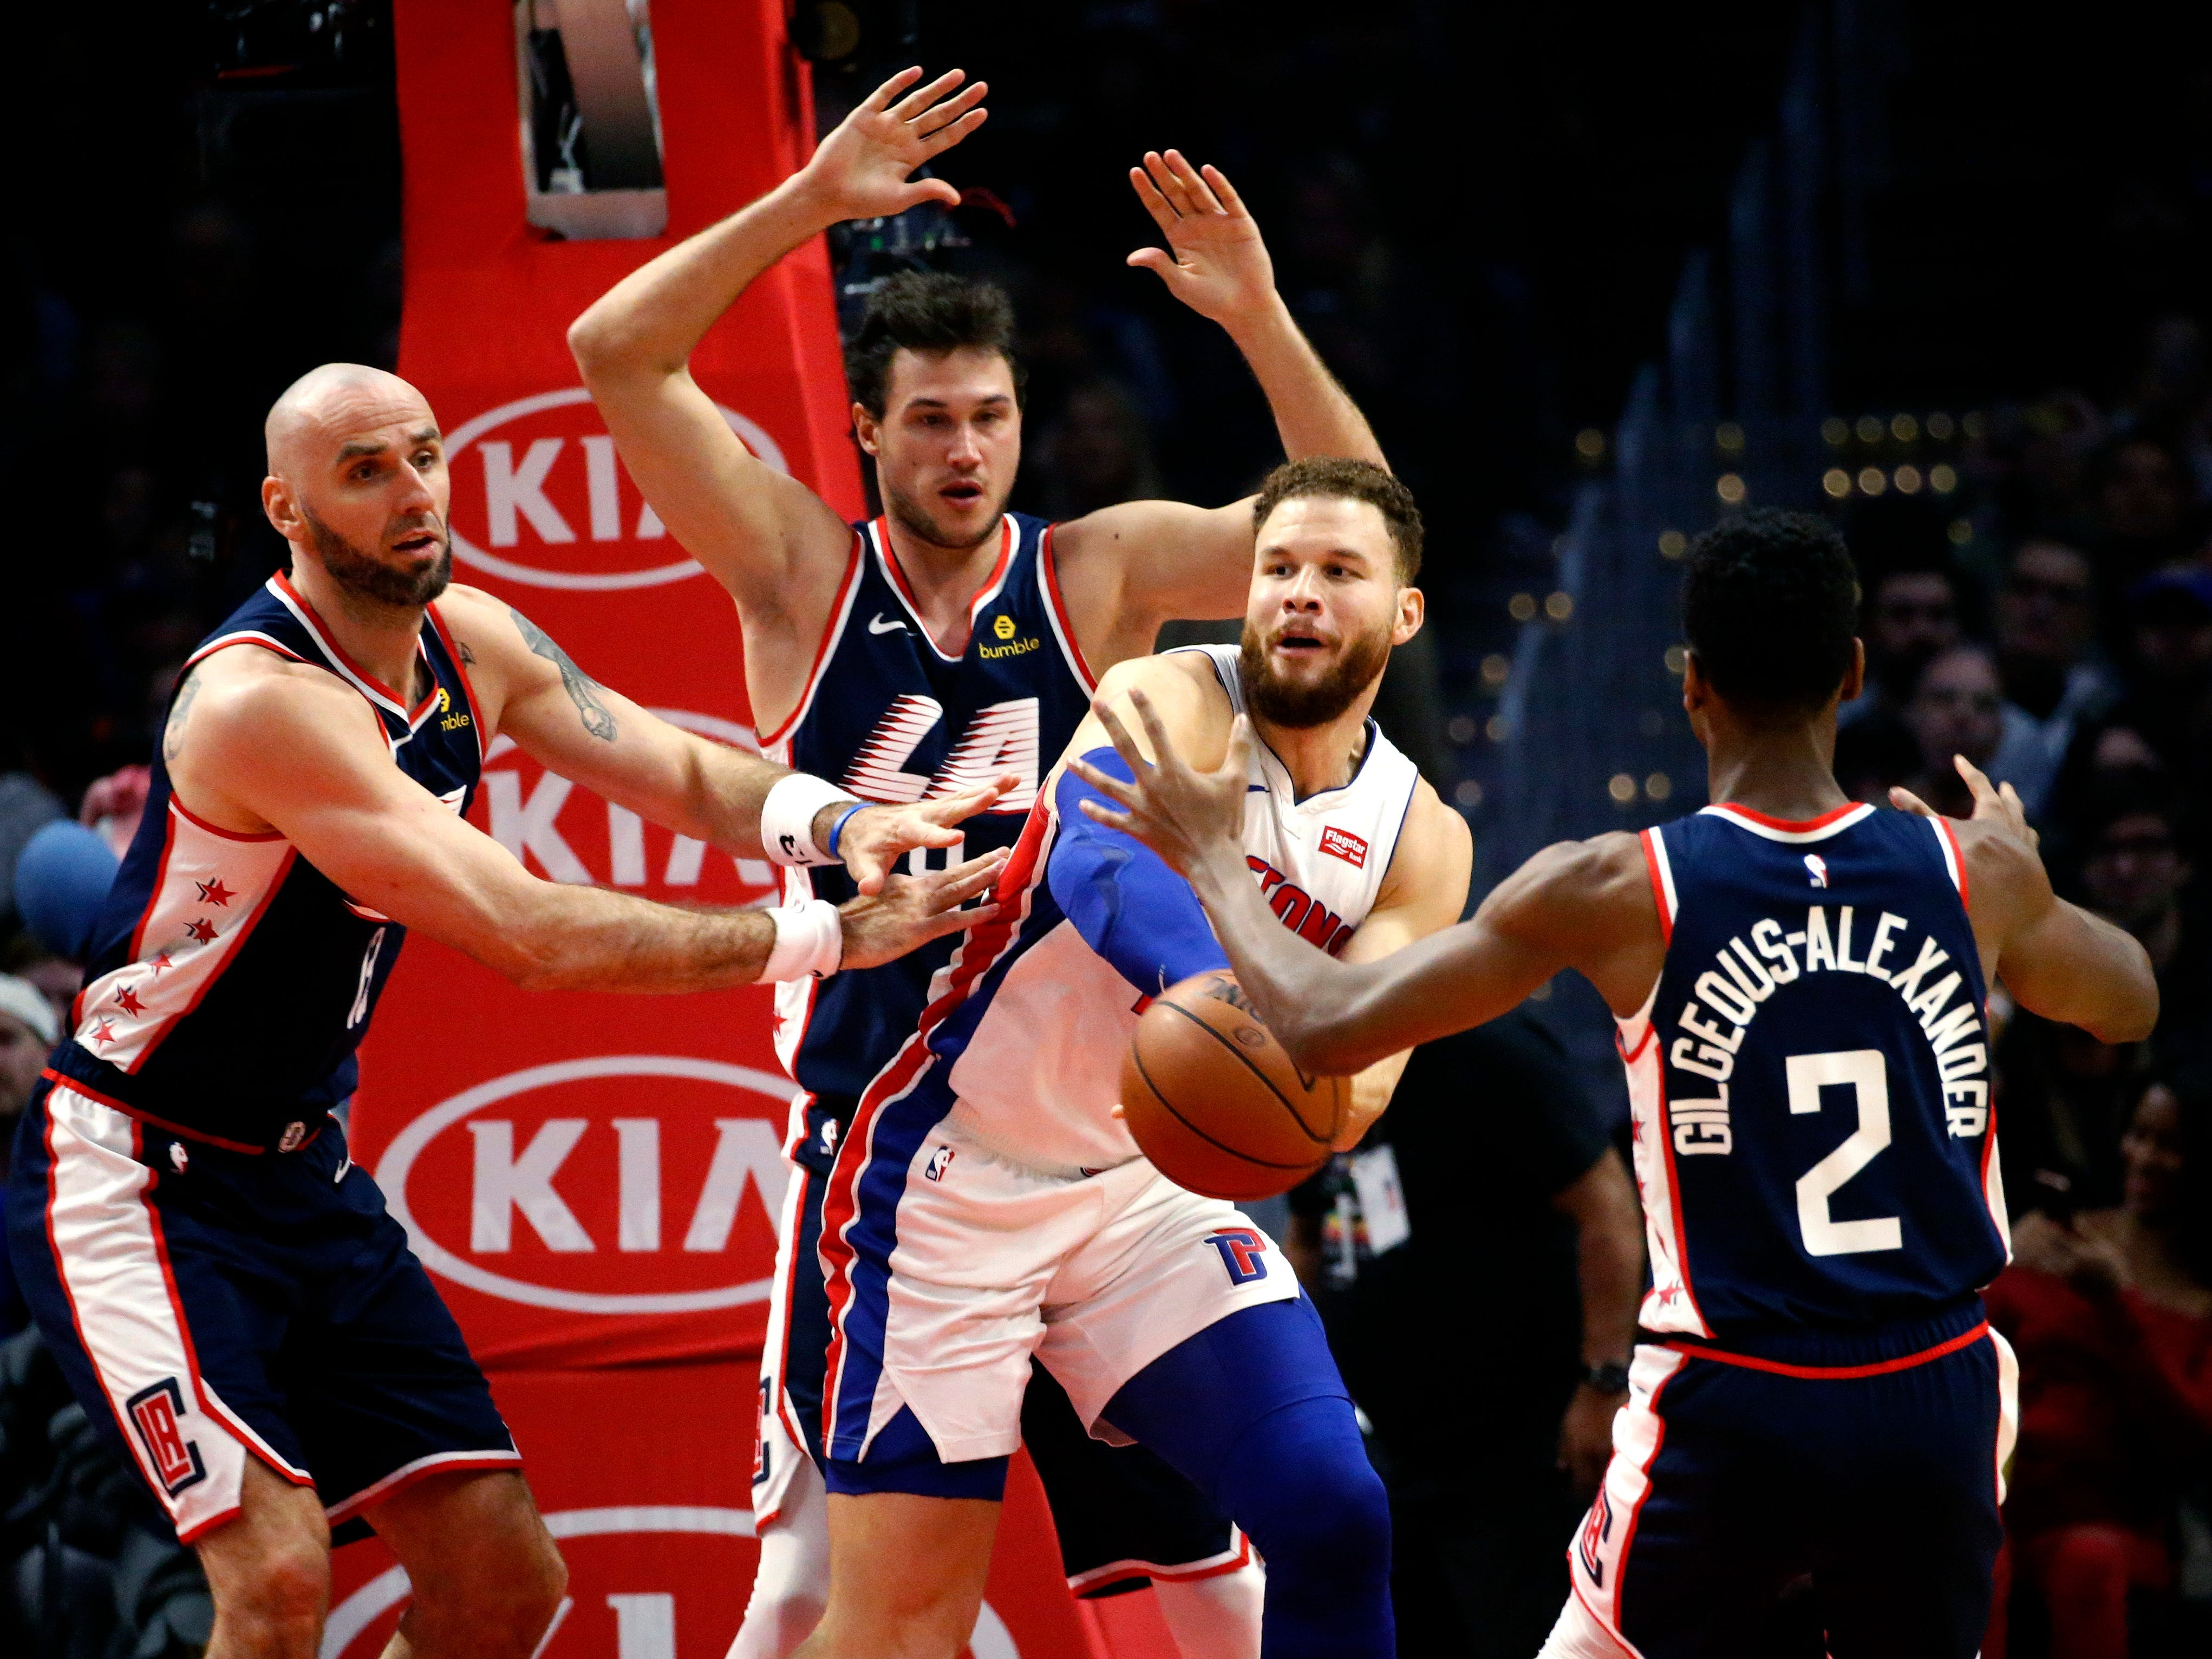 Pistons forward Blake Griffin, center, passes the ball while pressured by the Clippers' Danilo Gallinari, second from left, and Marcin Gortat, left, during the first half on Jan. 12, 2019, in Los Angeles.